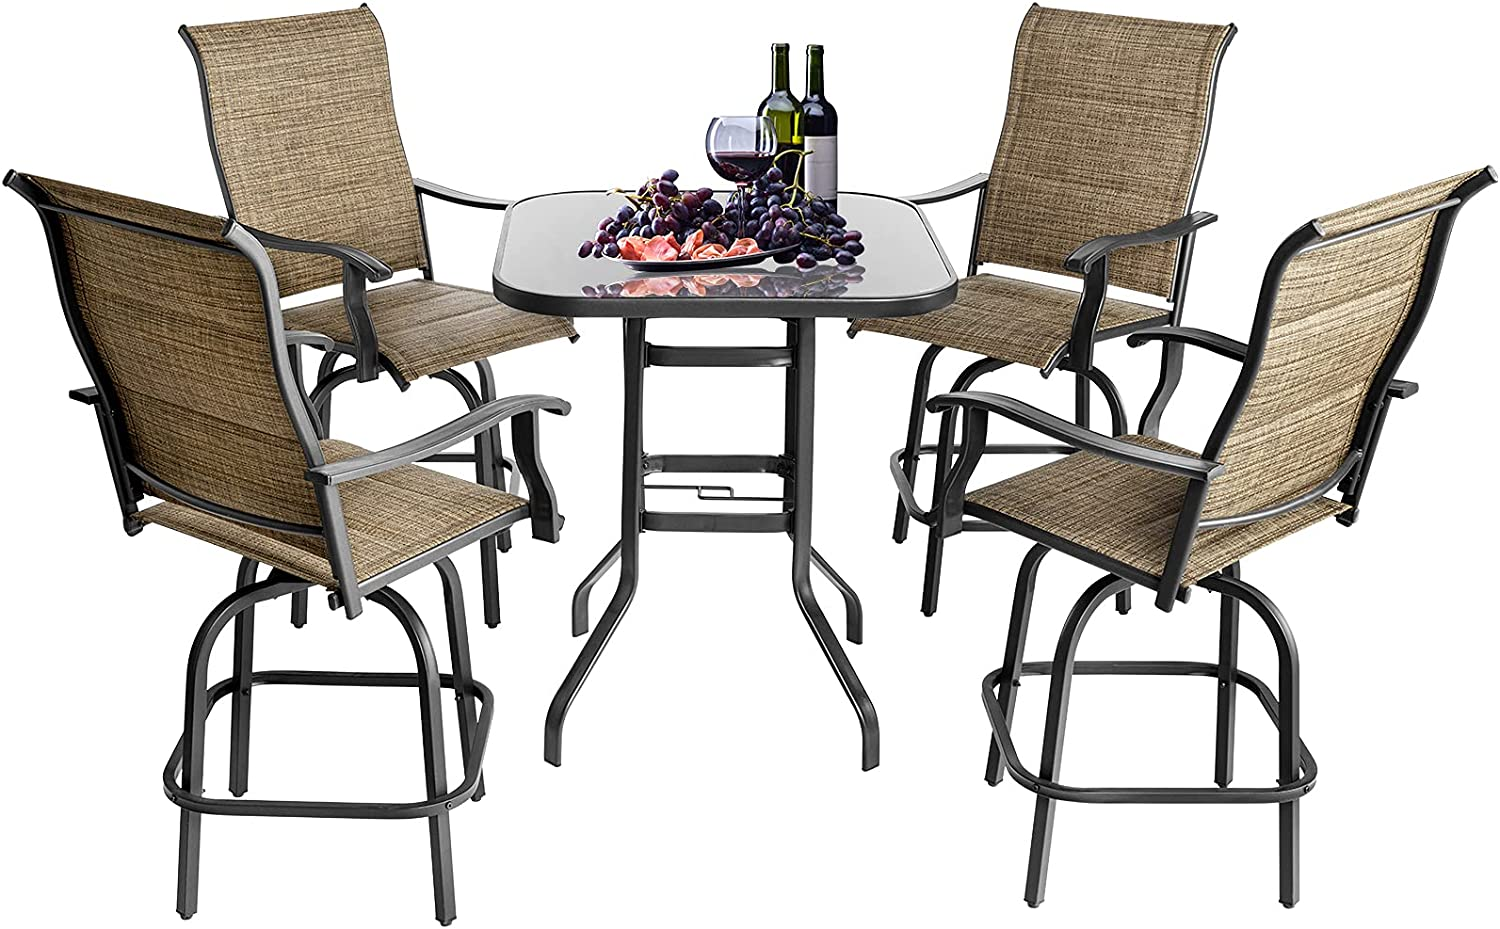 Sonegra Patio Bar Swivel Stools with High Back and Armrest, 4 Textilene 360° Swivel Chairs with Glassed Top Table, 5 Pieces Outdoor Furniture Set, Brown…